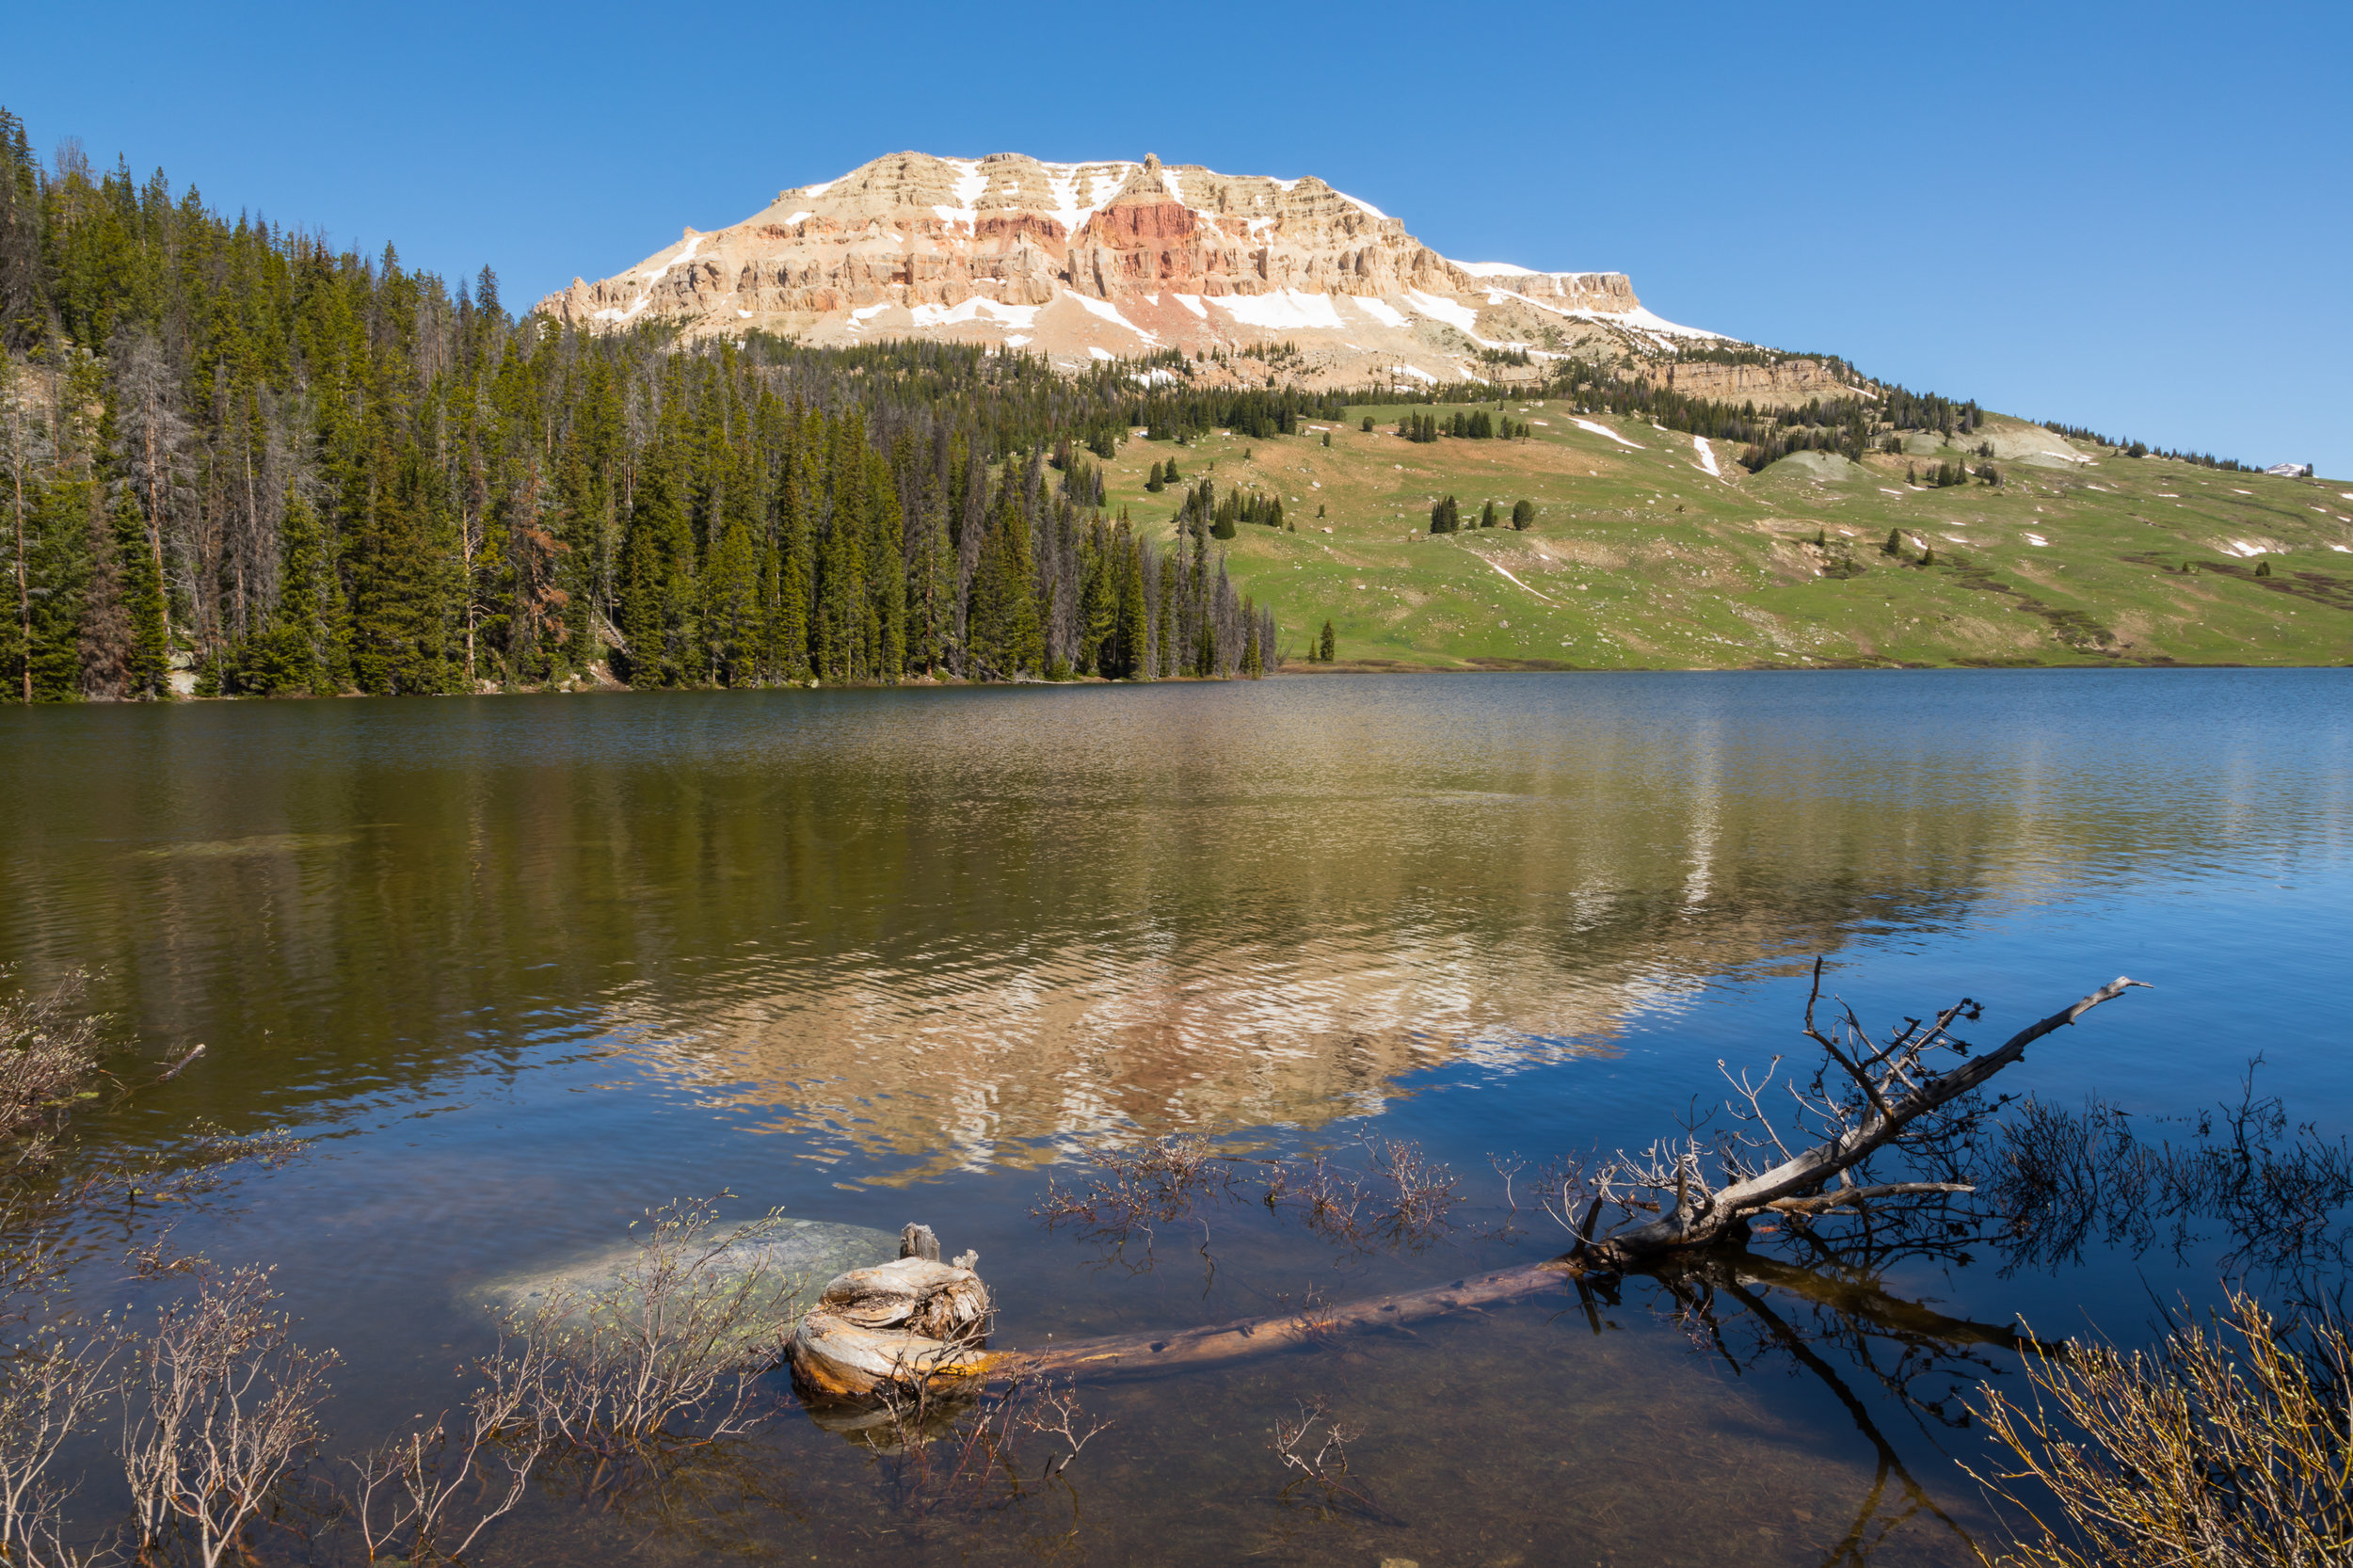 Beartooth Butte, Image # 6199